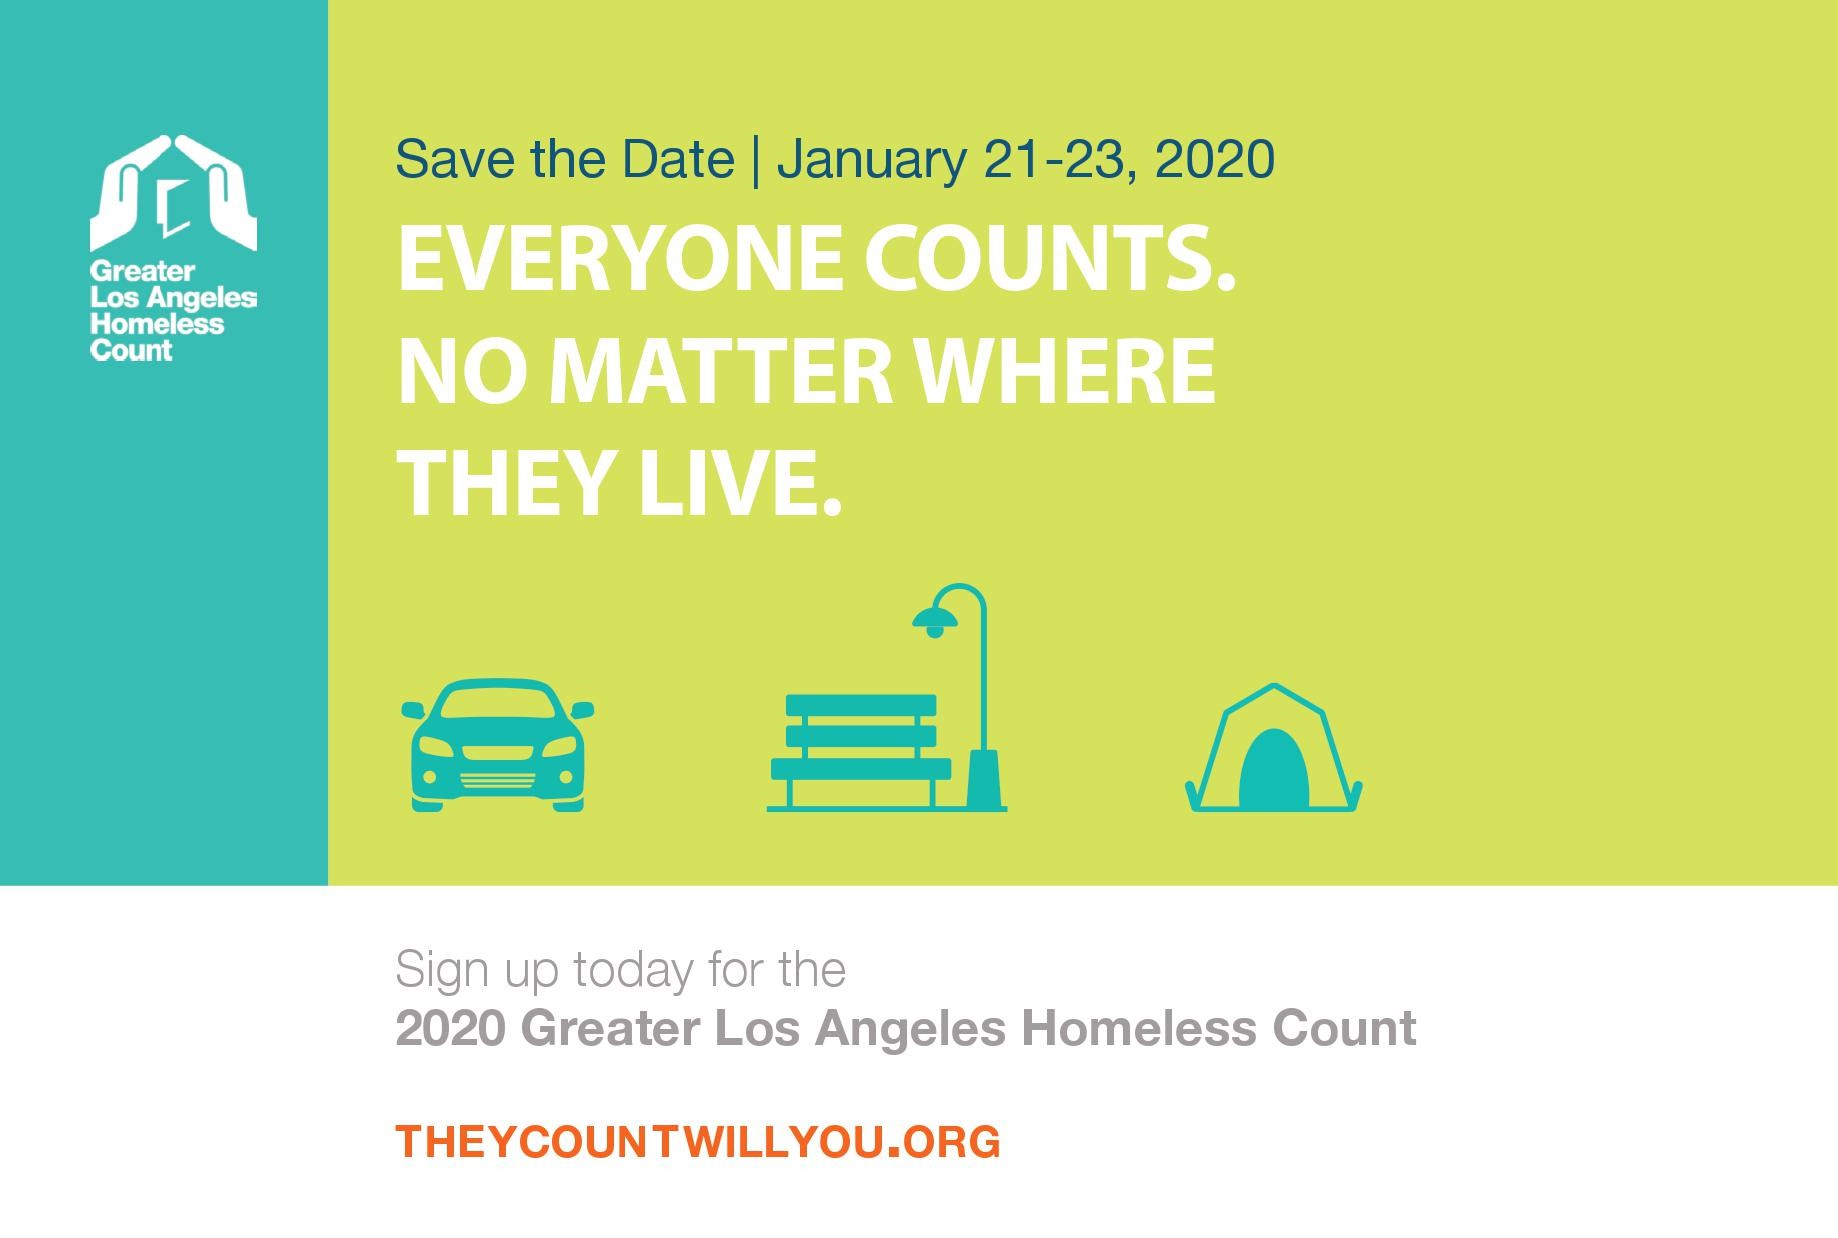 Save the Date Homeless Count